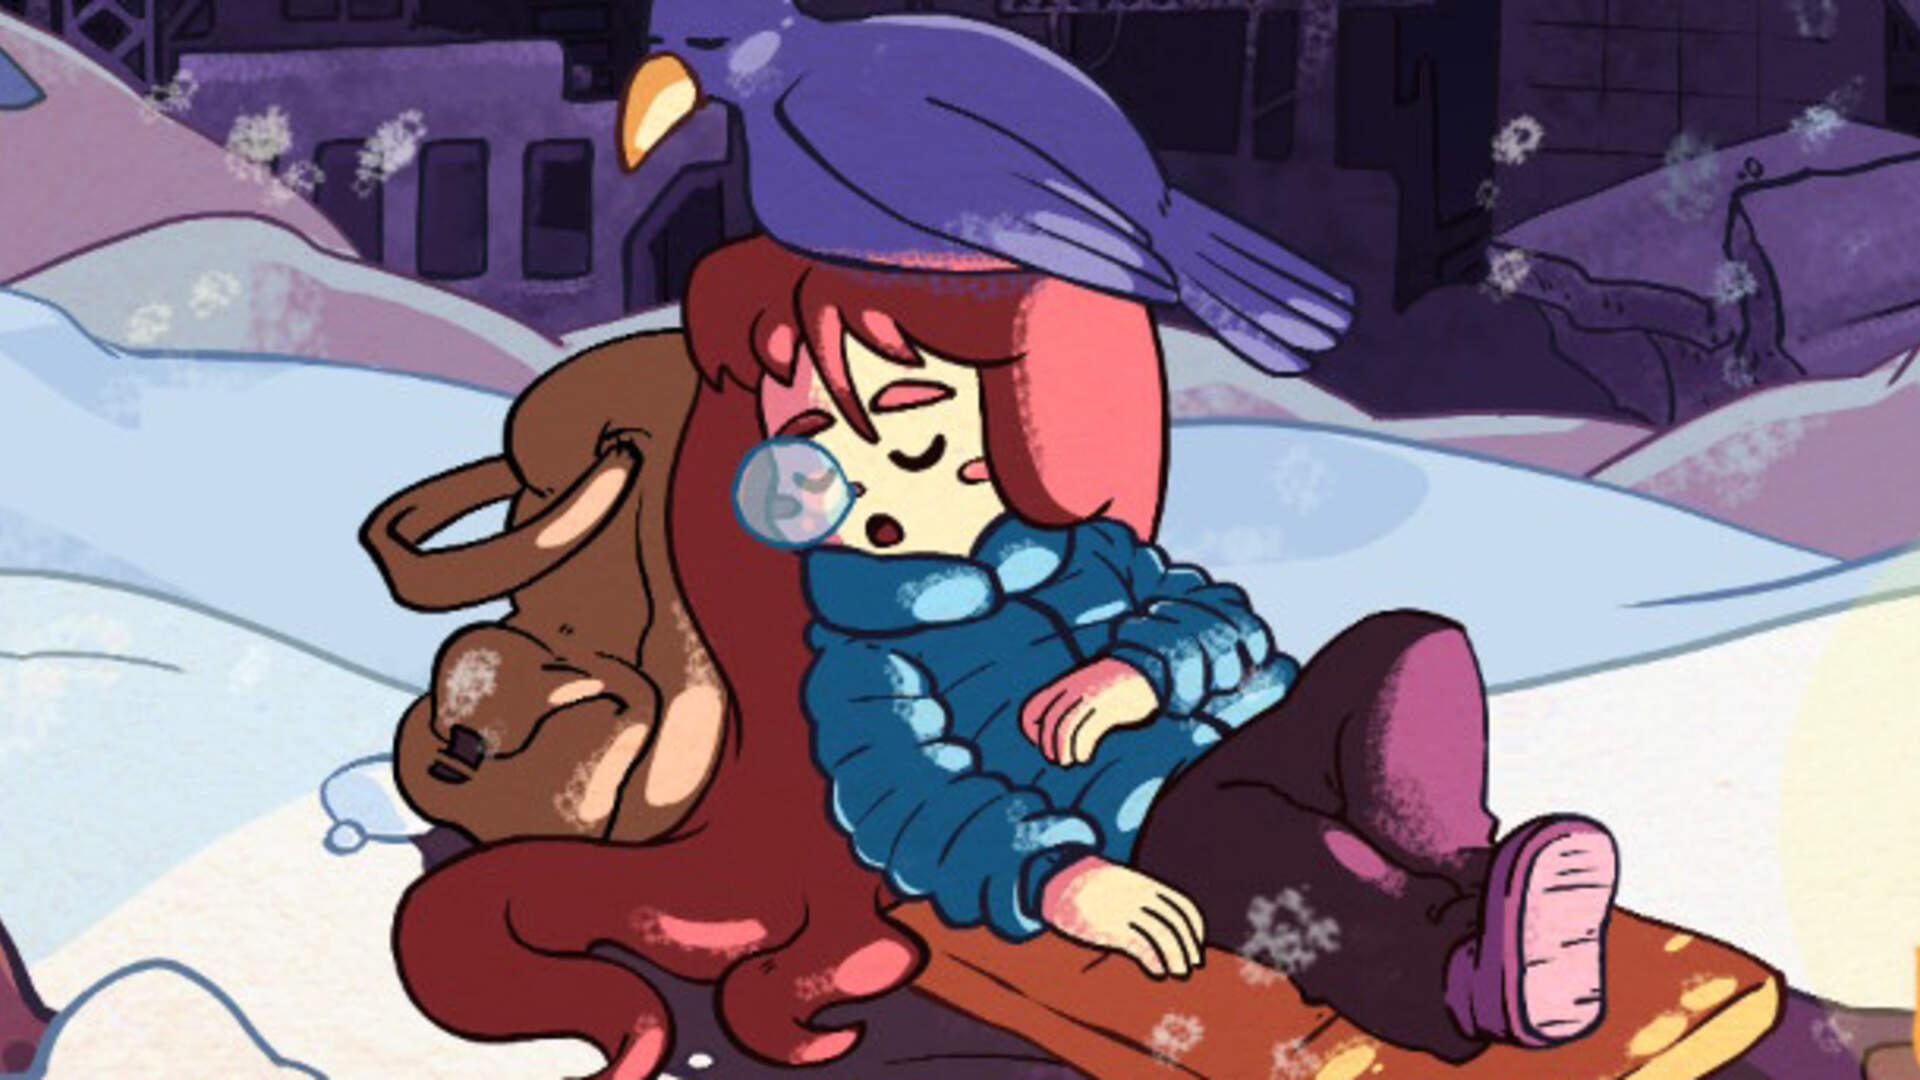 Celeste Review: Mountains May Depart